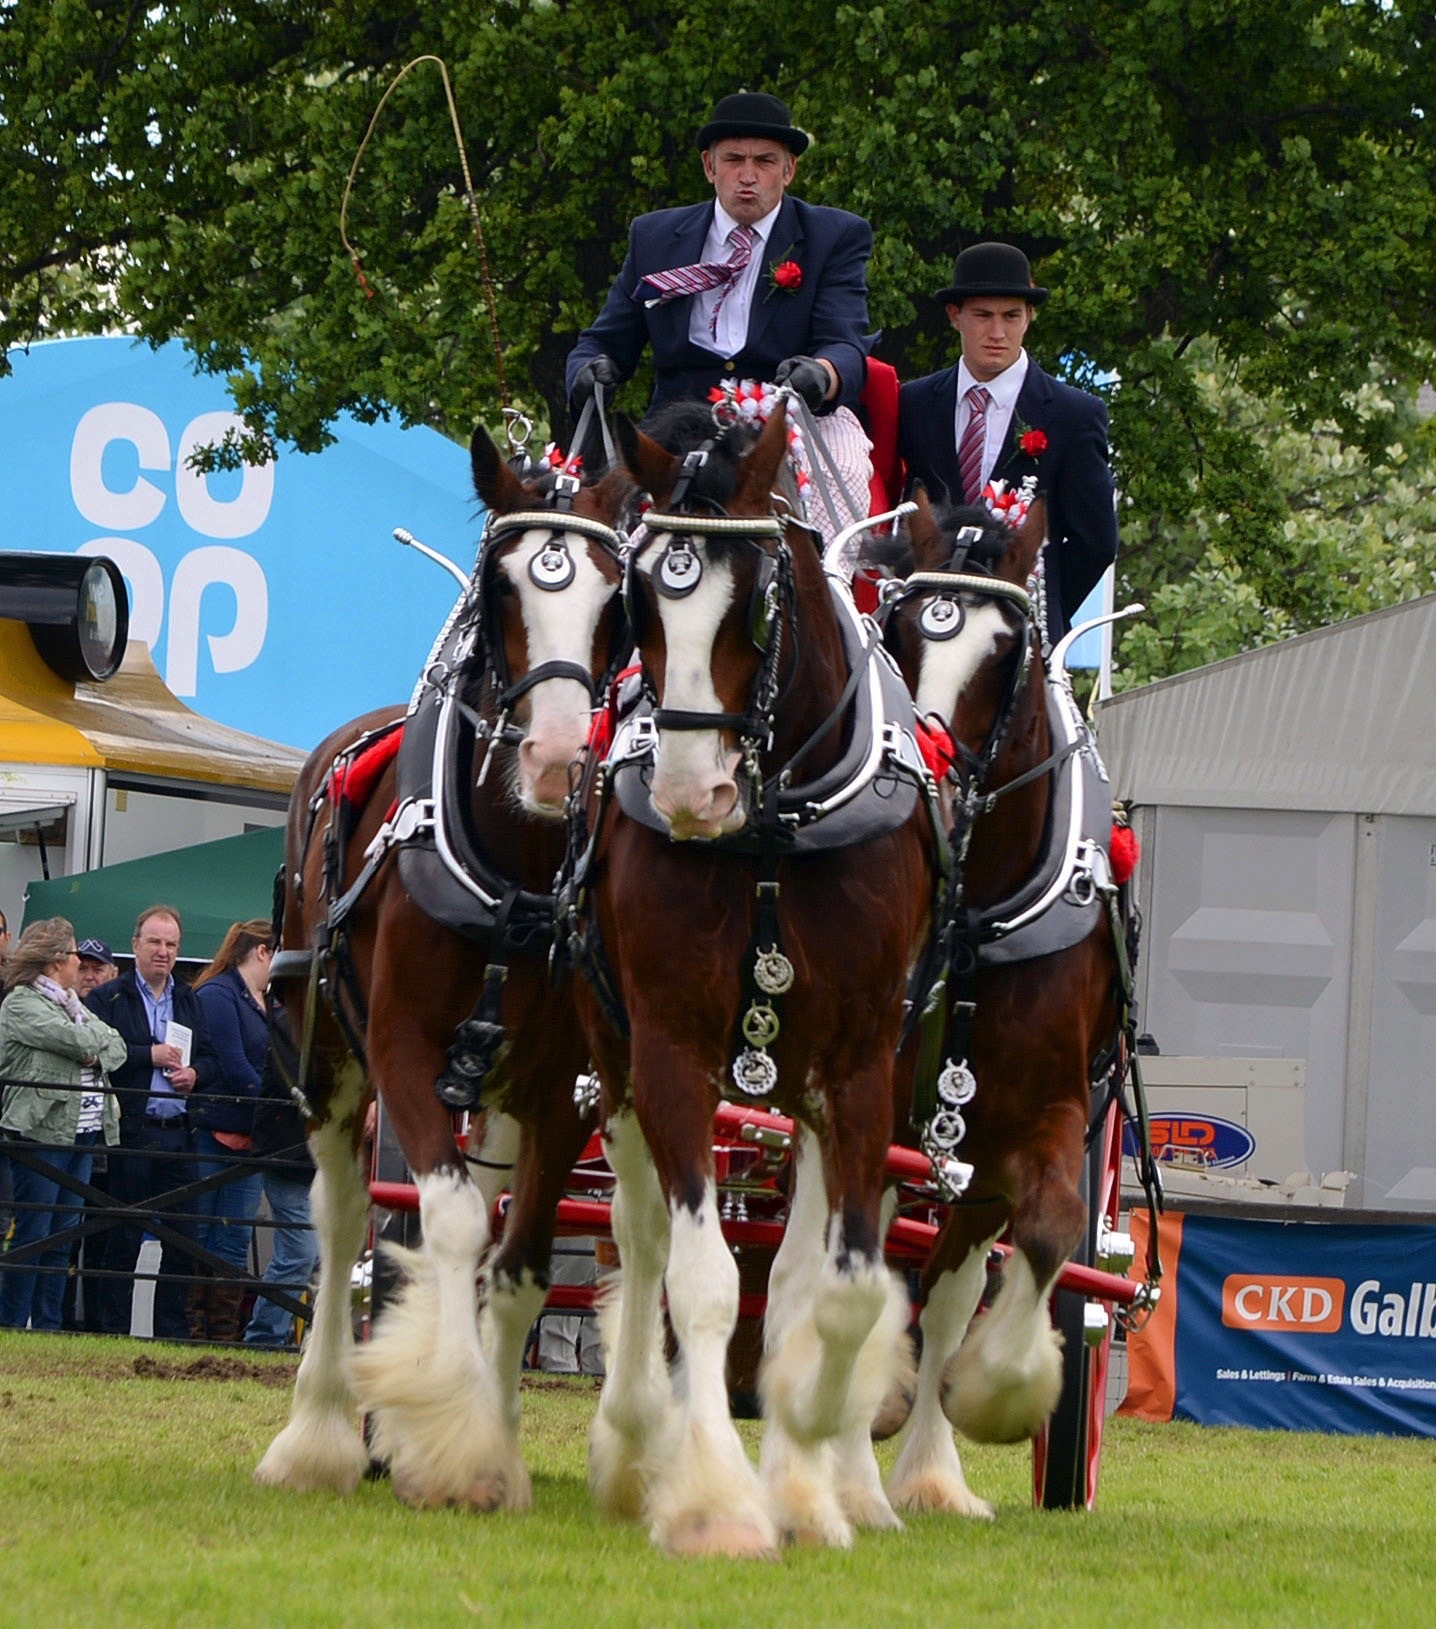 New trophy for farm carts - The Clydesdale Horse Society is to delighted to be able present a new trophy for the winner at the Royal Highland Show